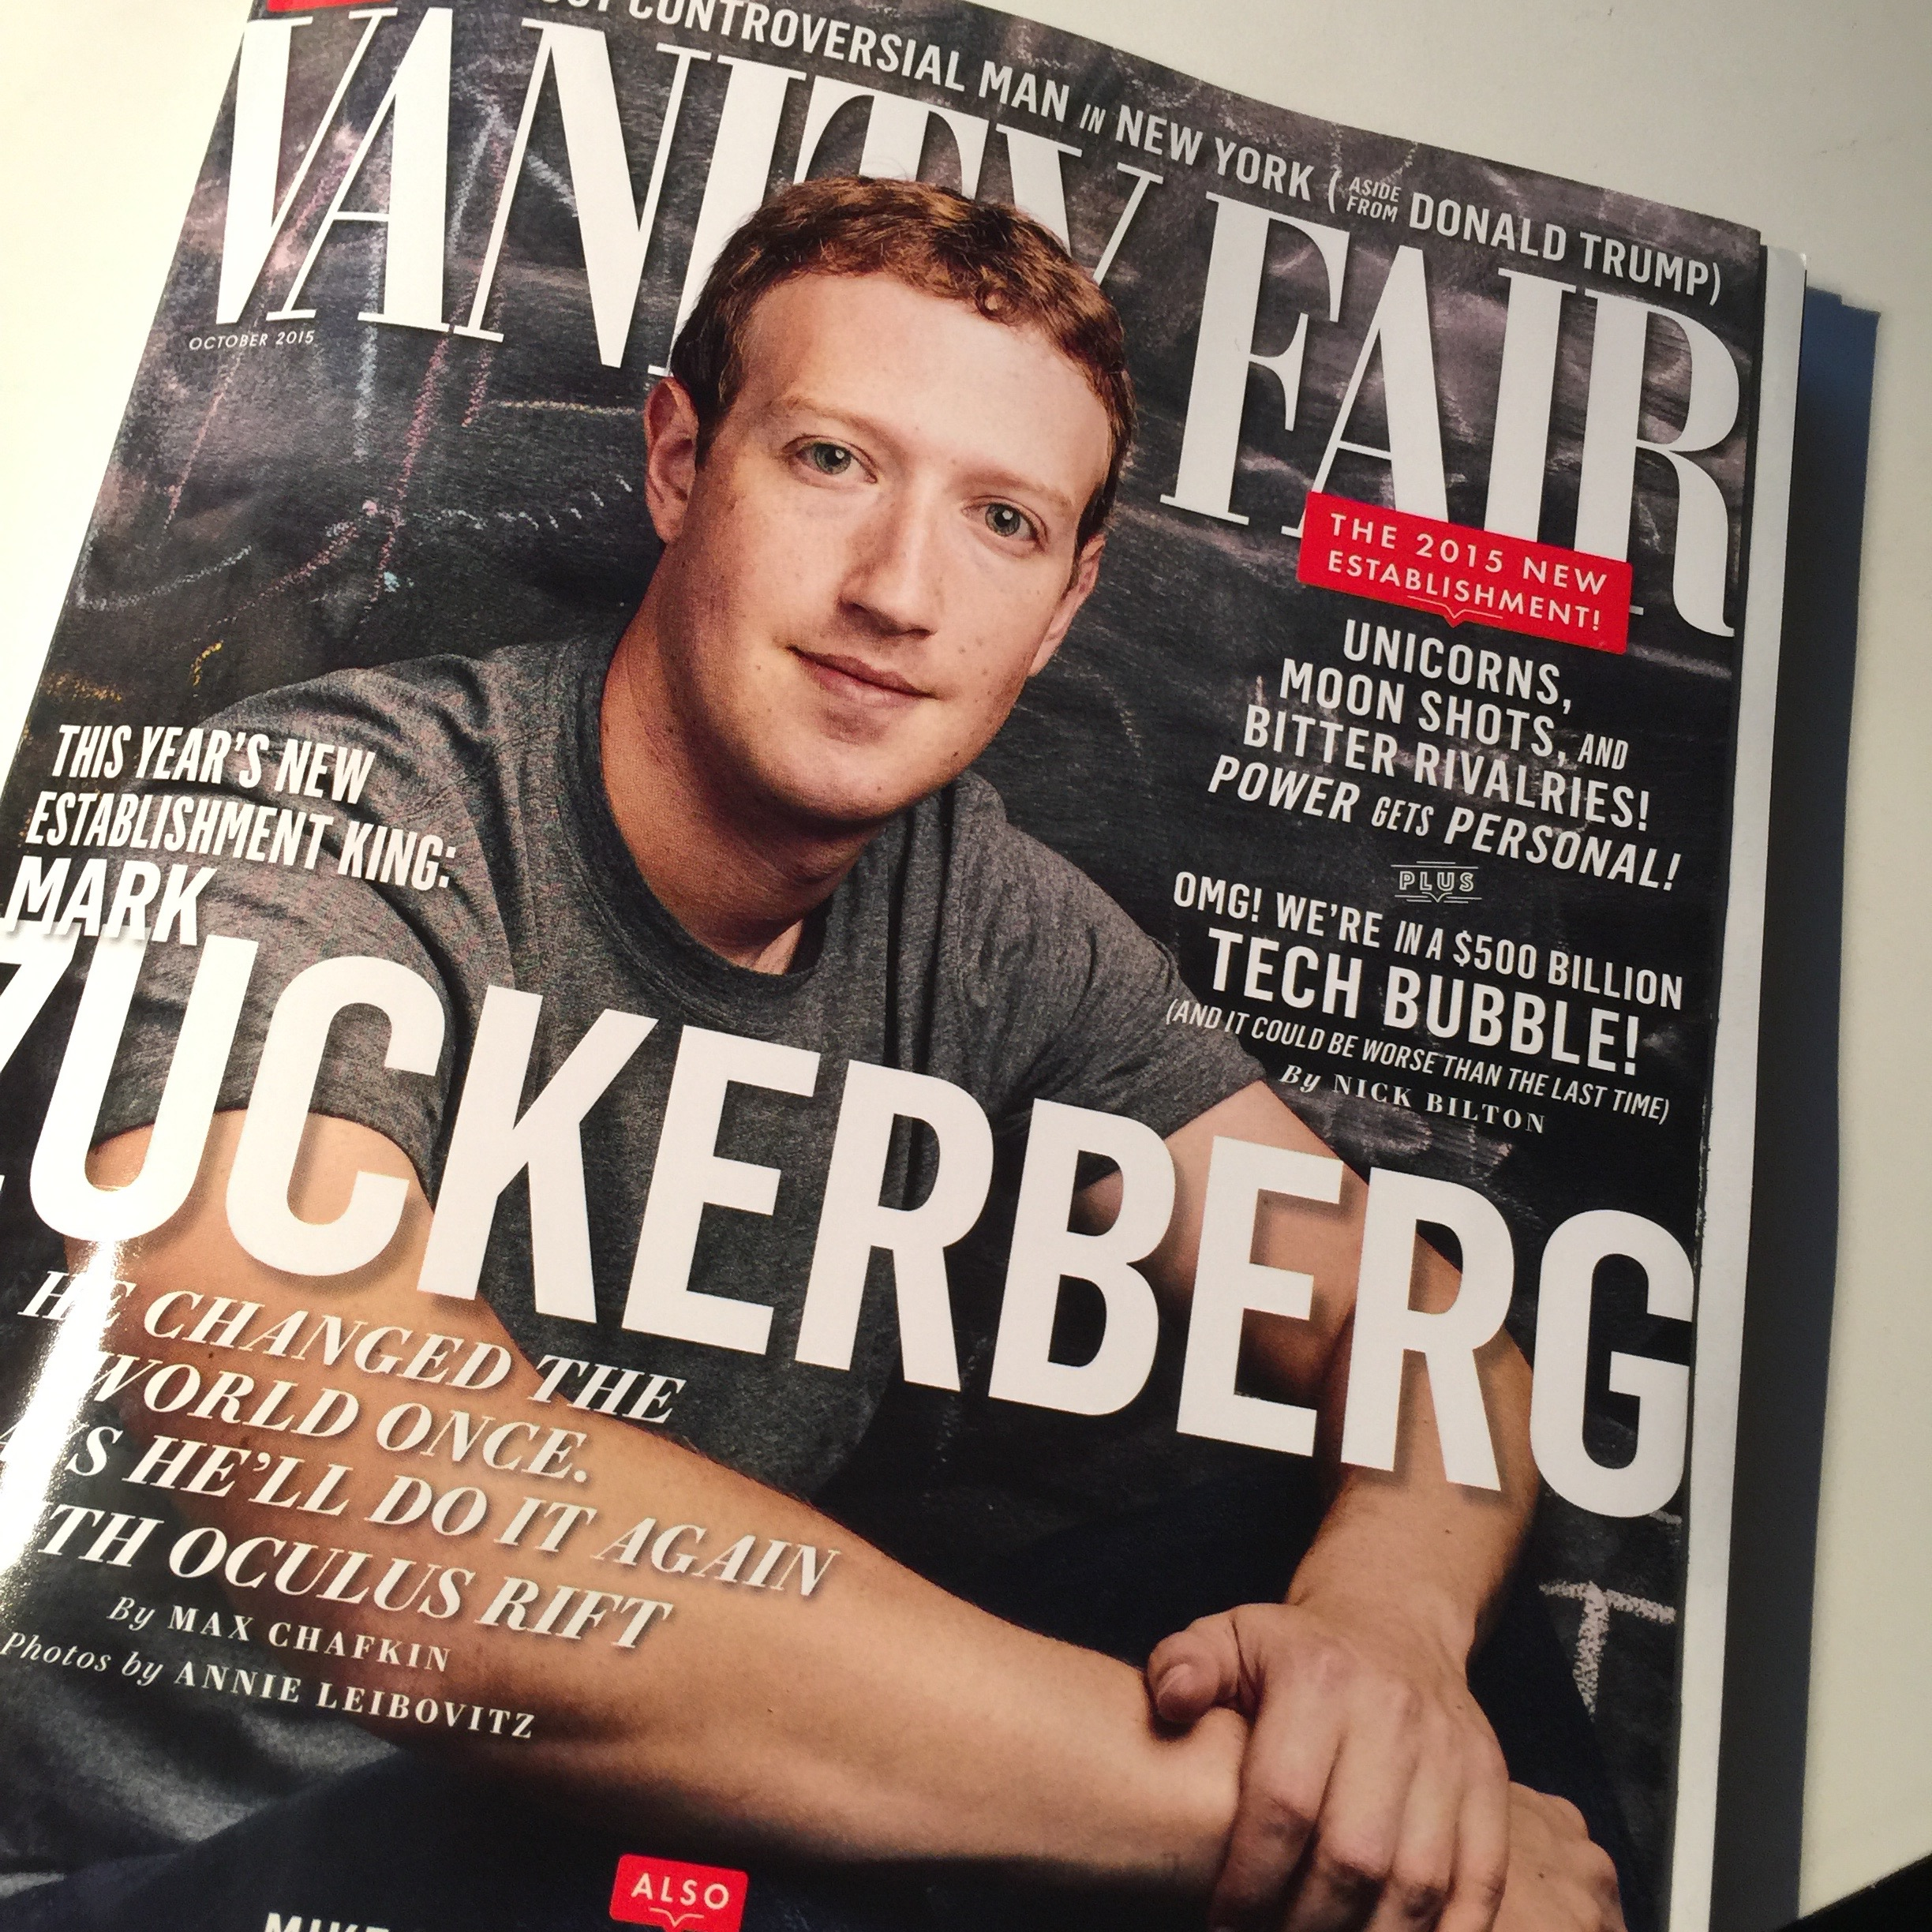 iThigh in Vanity Fair Magazine New Establishment Mark Zuckerberg